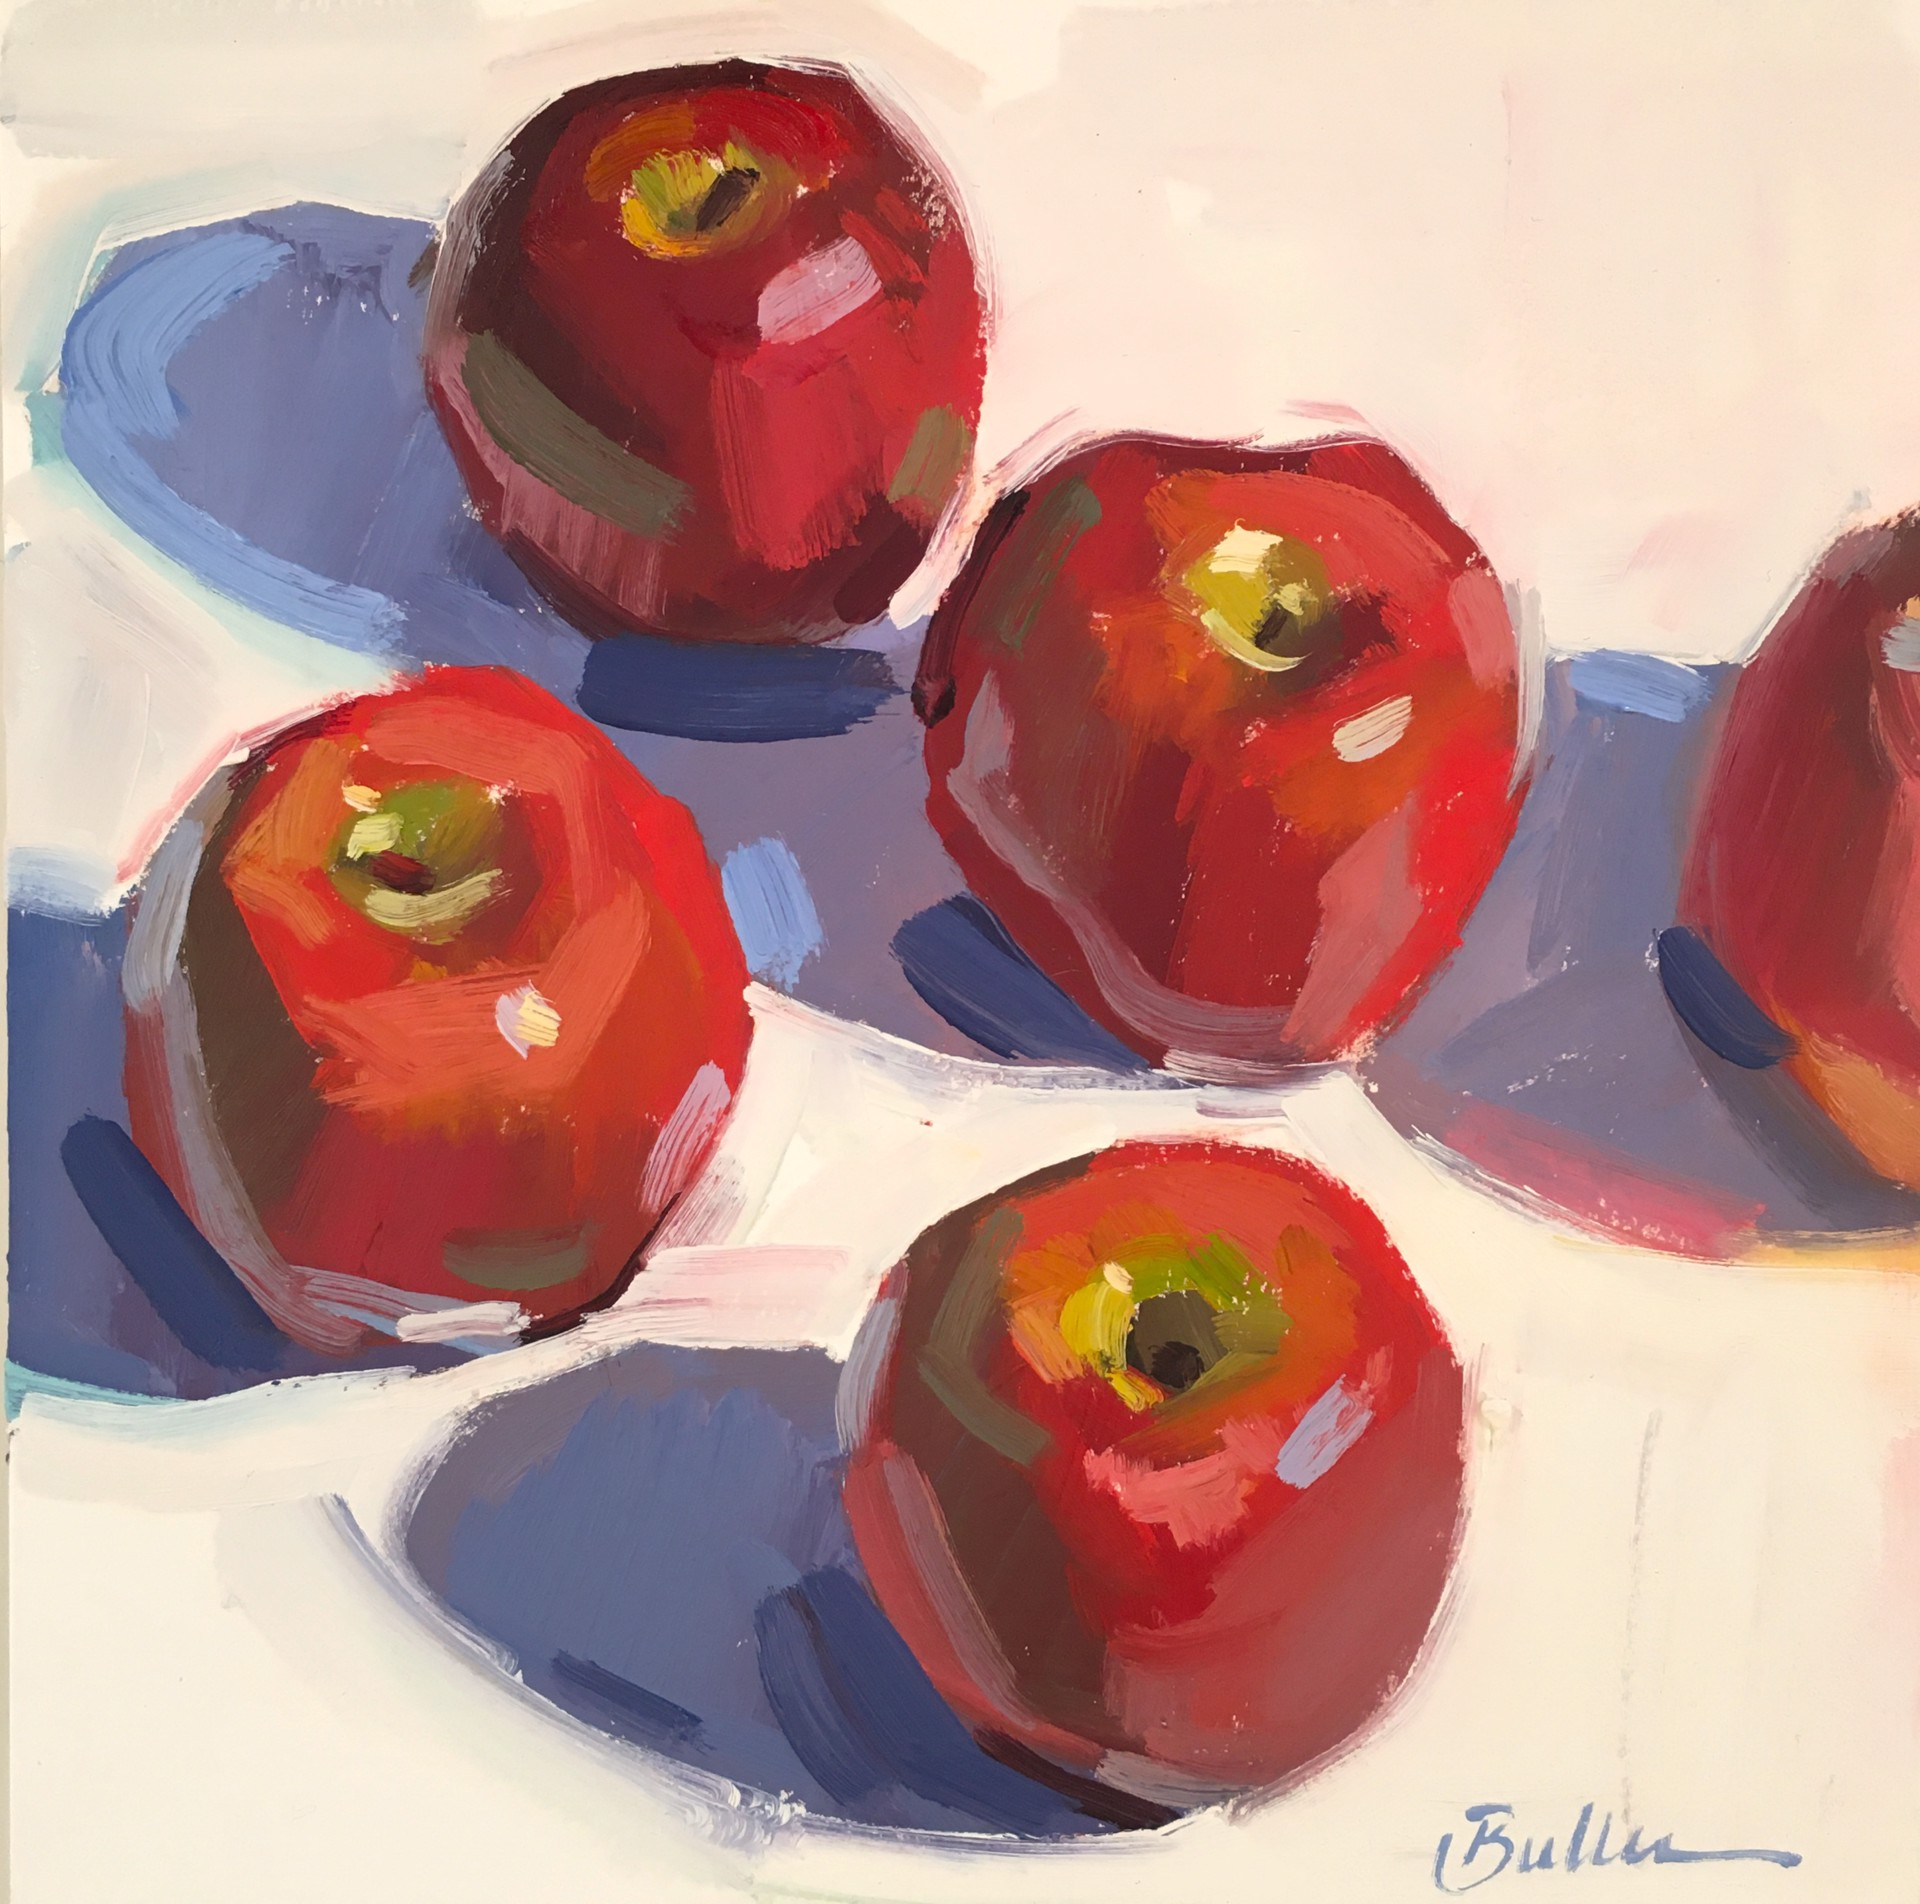 Apples to Apples by Samantha Buller